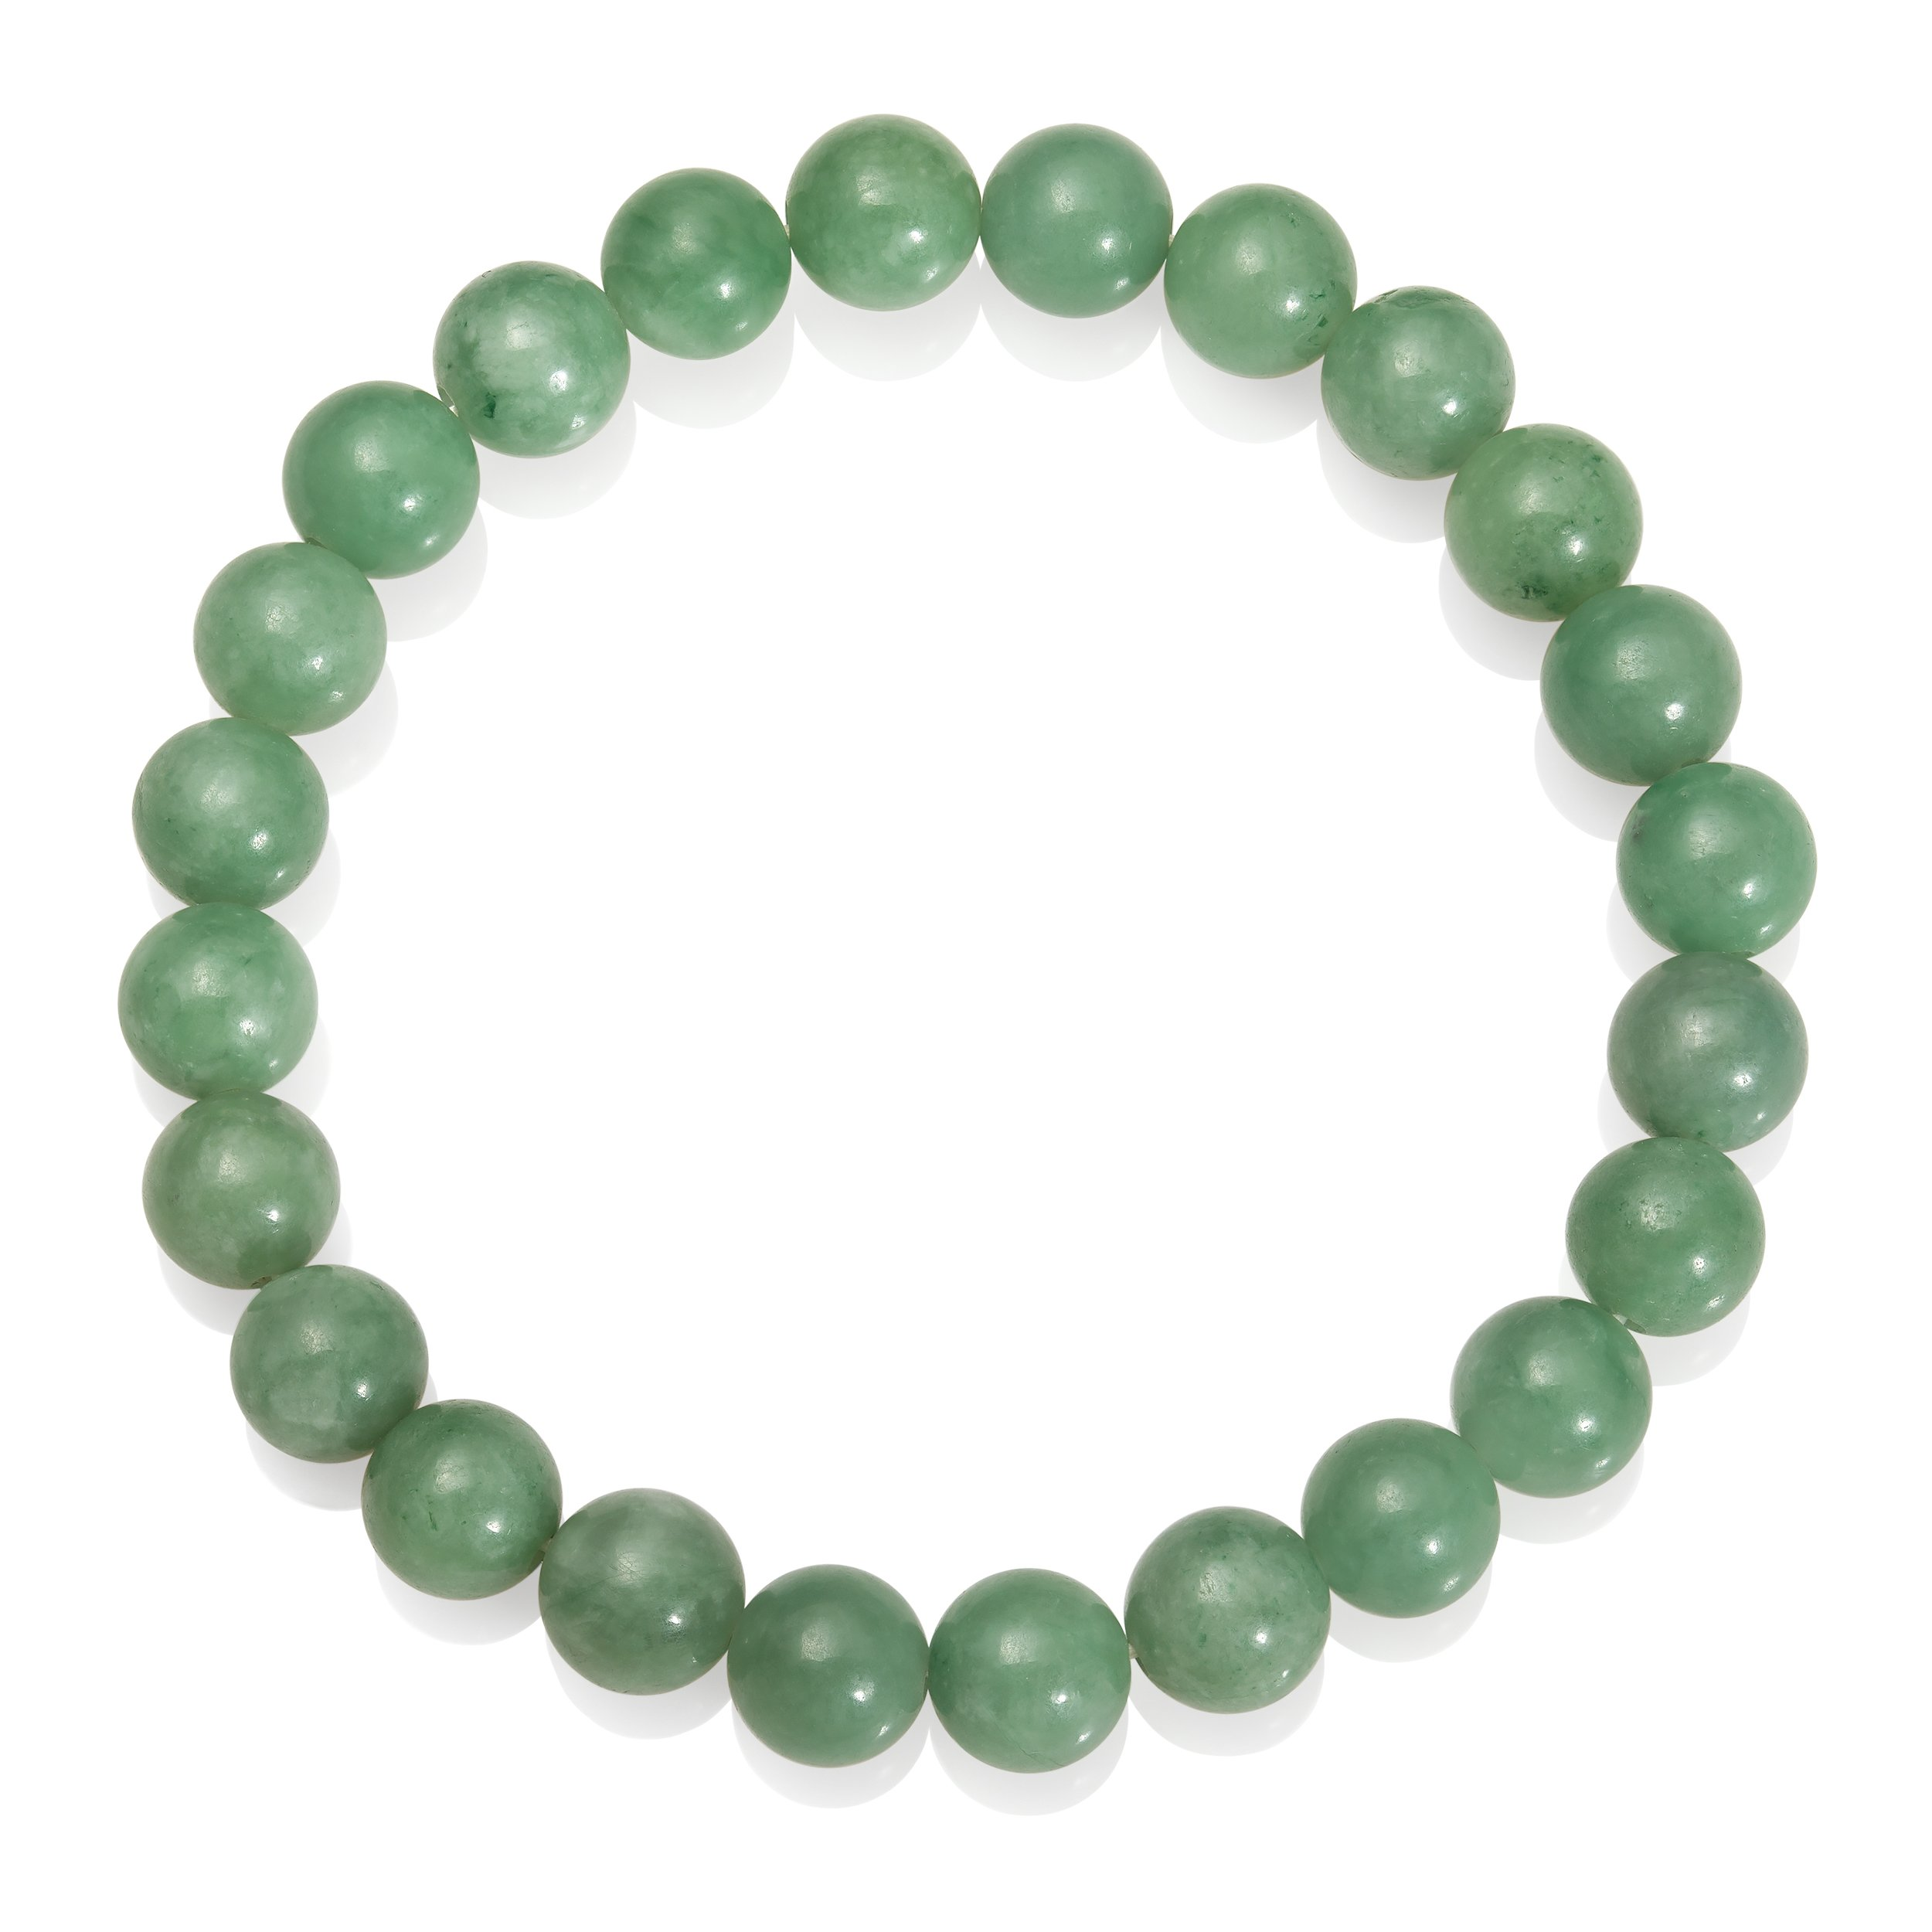 8mm Natural Green Jade Strand-Style Stretch Bracelet, 8.5'' by Pearlzzz